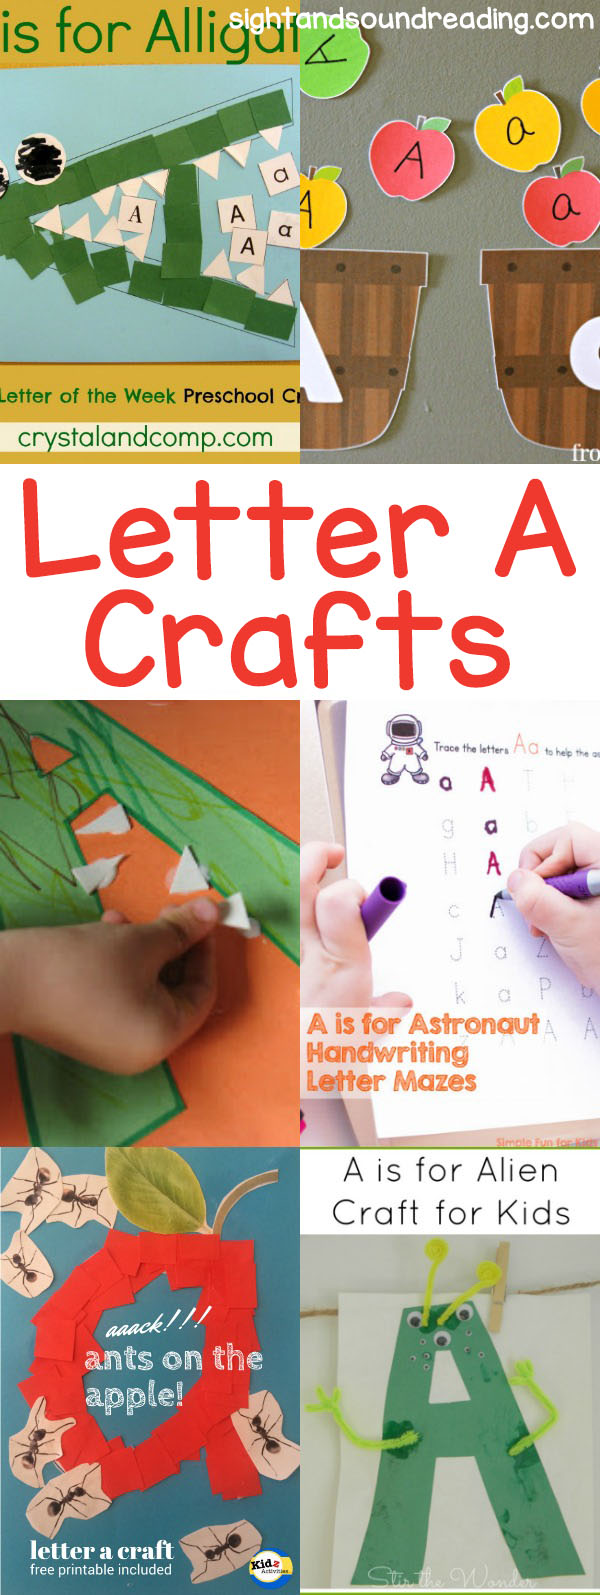 Letter A Crafts for preschool or kindergarten - Fun, easy and educational!